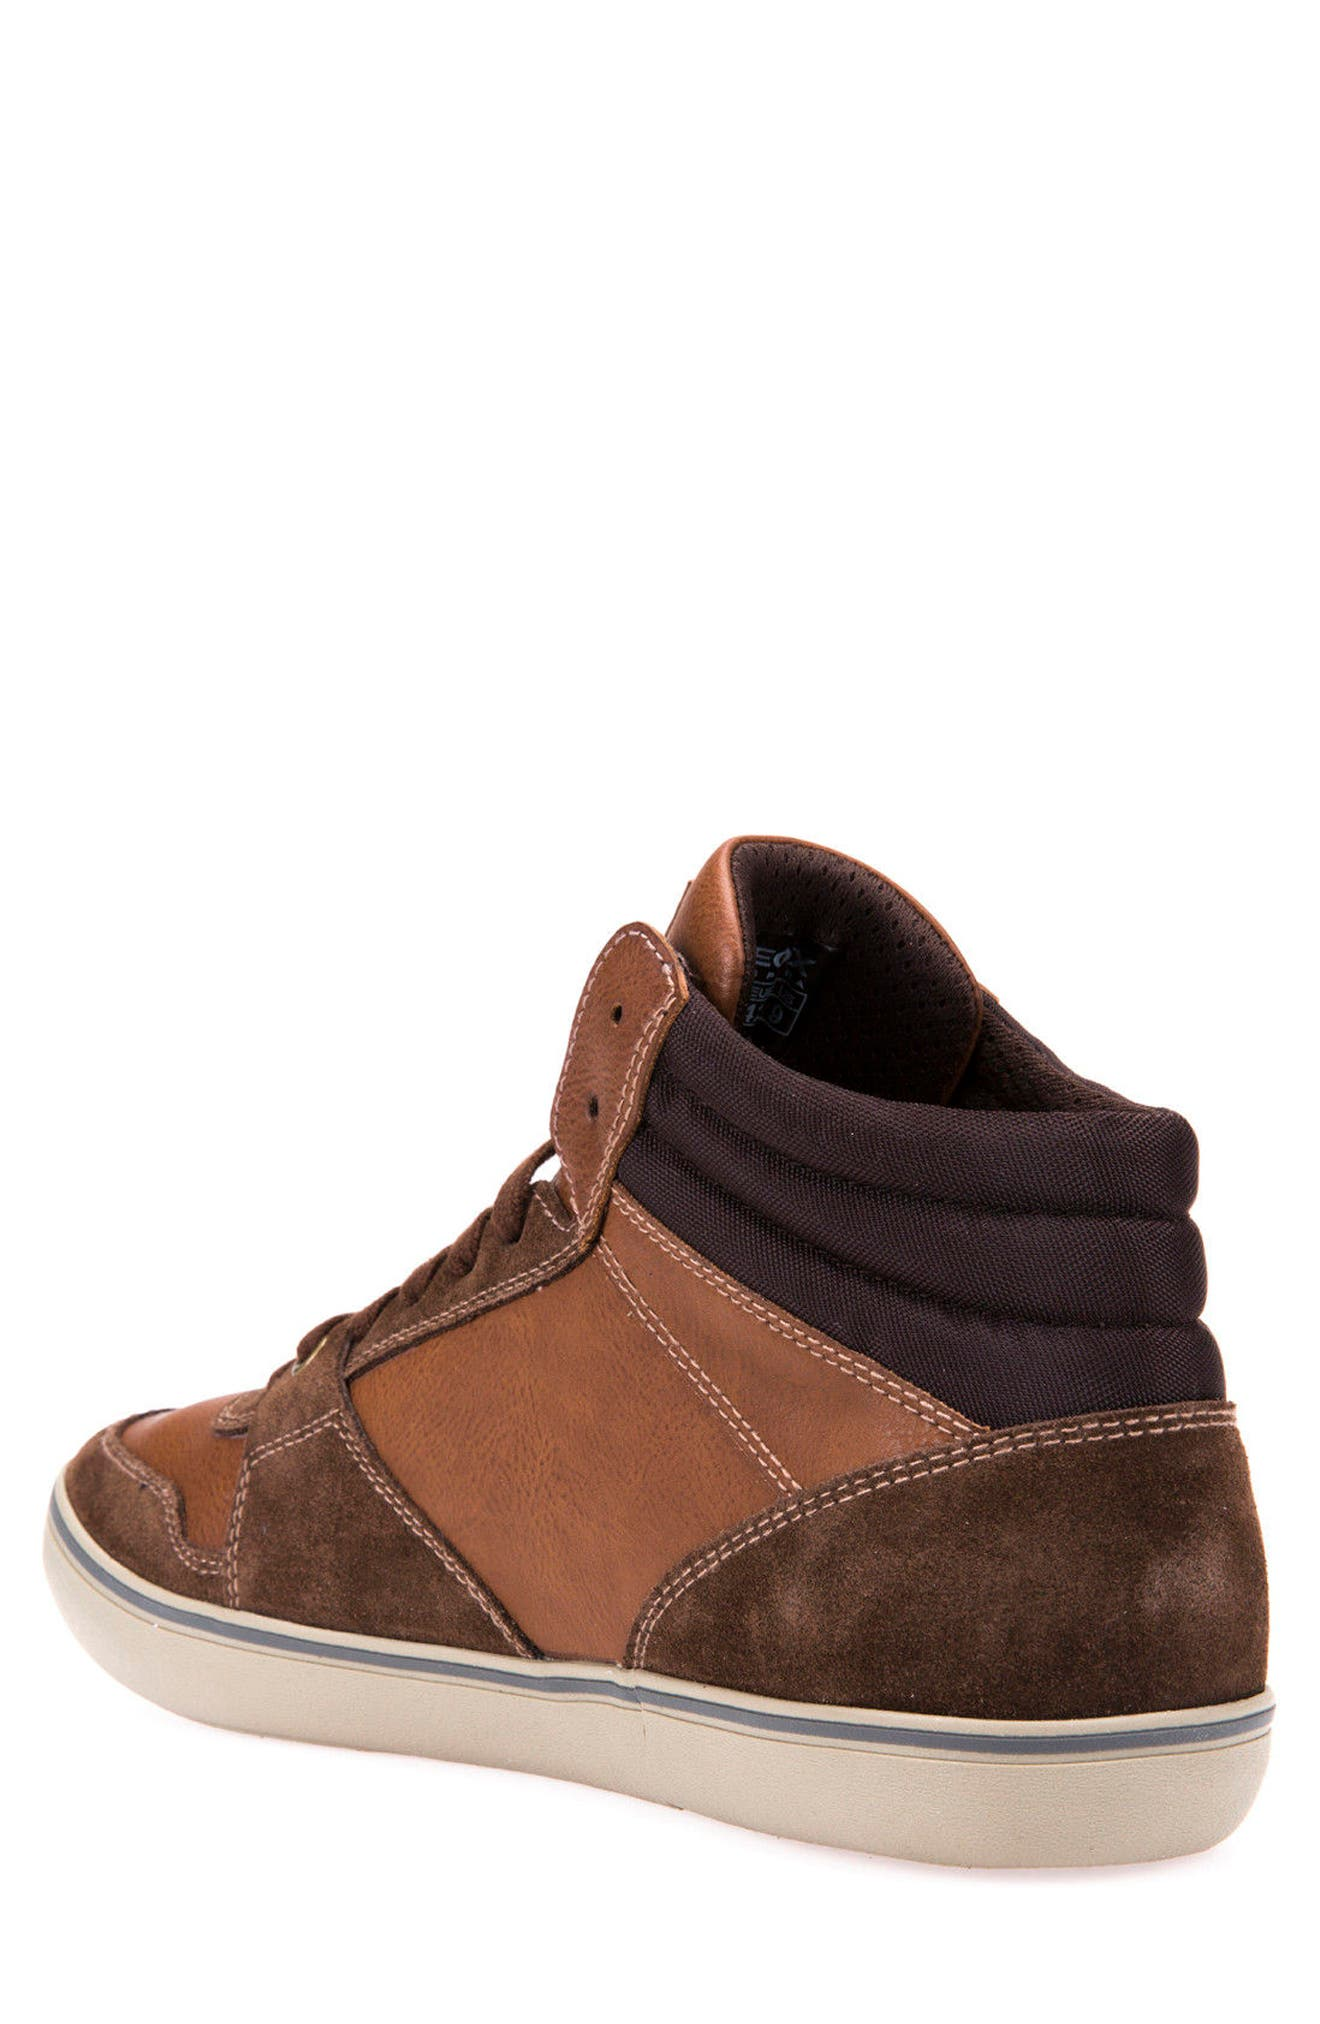 Box 30 High Top Sneaker,                             Alternate thumbnail 2, color,                             Ebony/ Brown Cotto